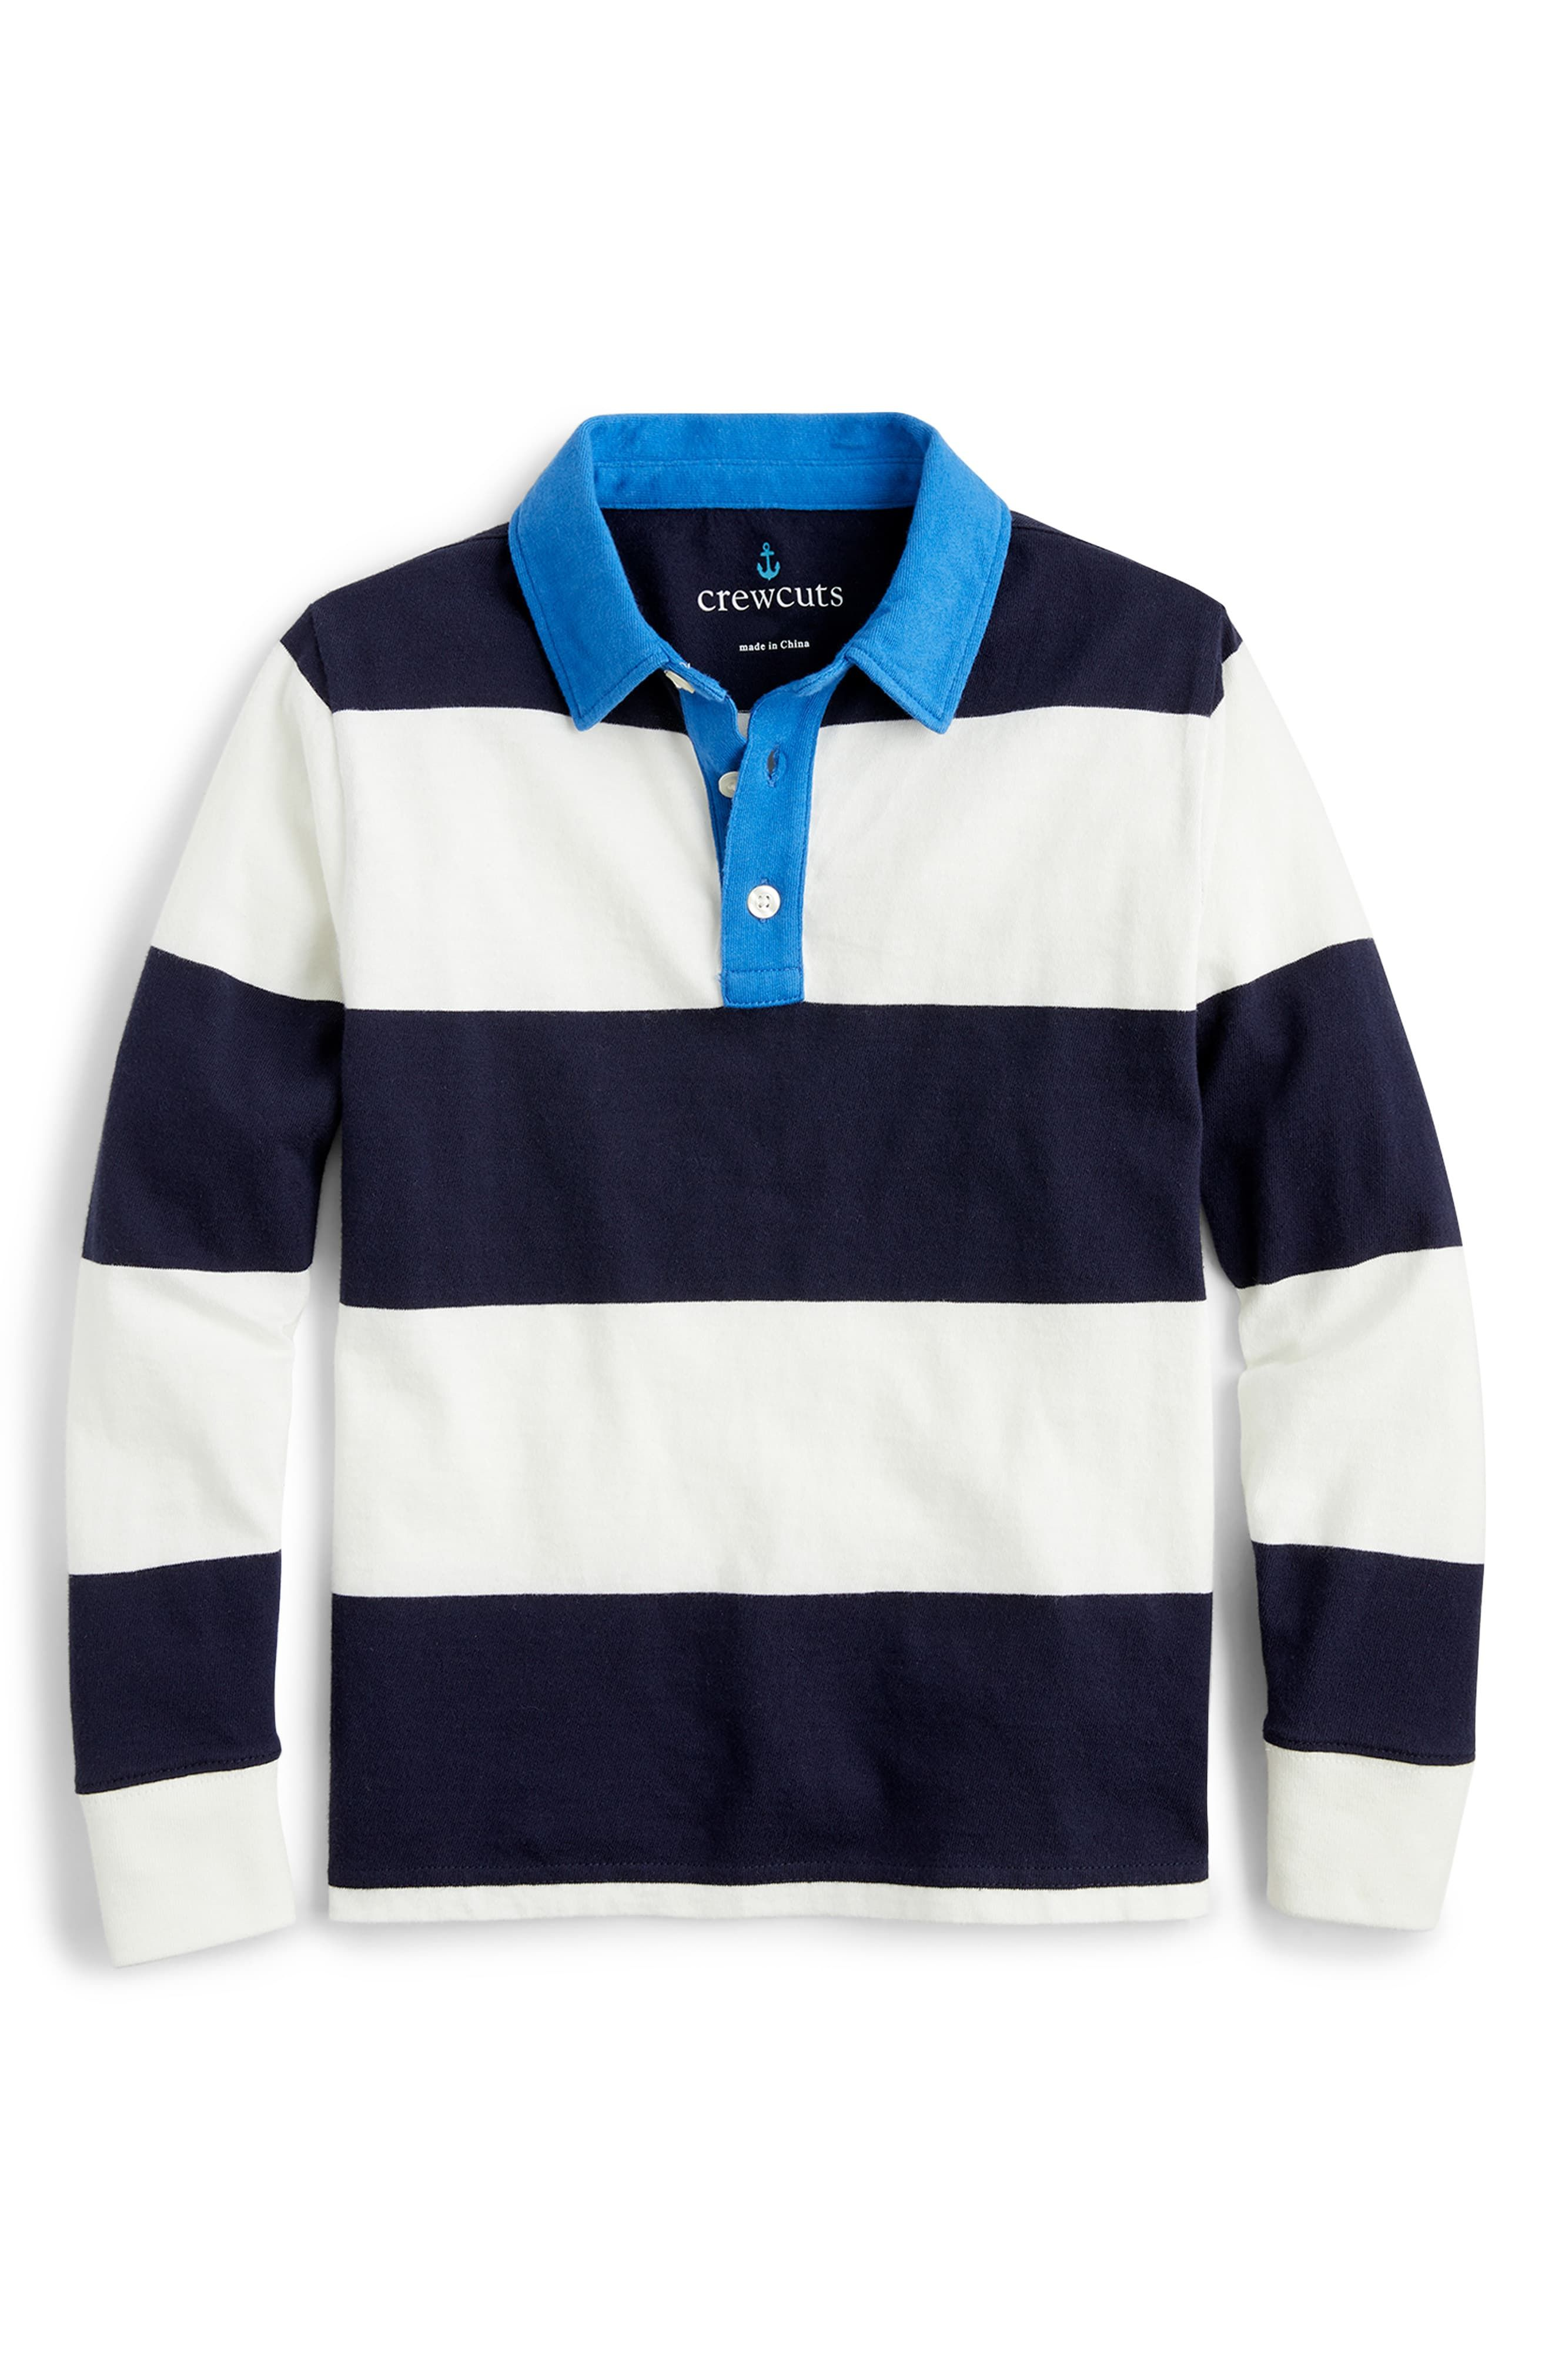 crewcuts by J.Crew Boys Cotton Rugby-Stripe Sweater Toddler//Little Kids//Big Kids